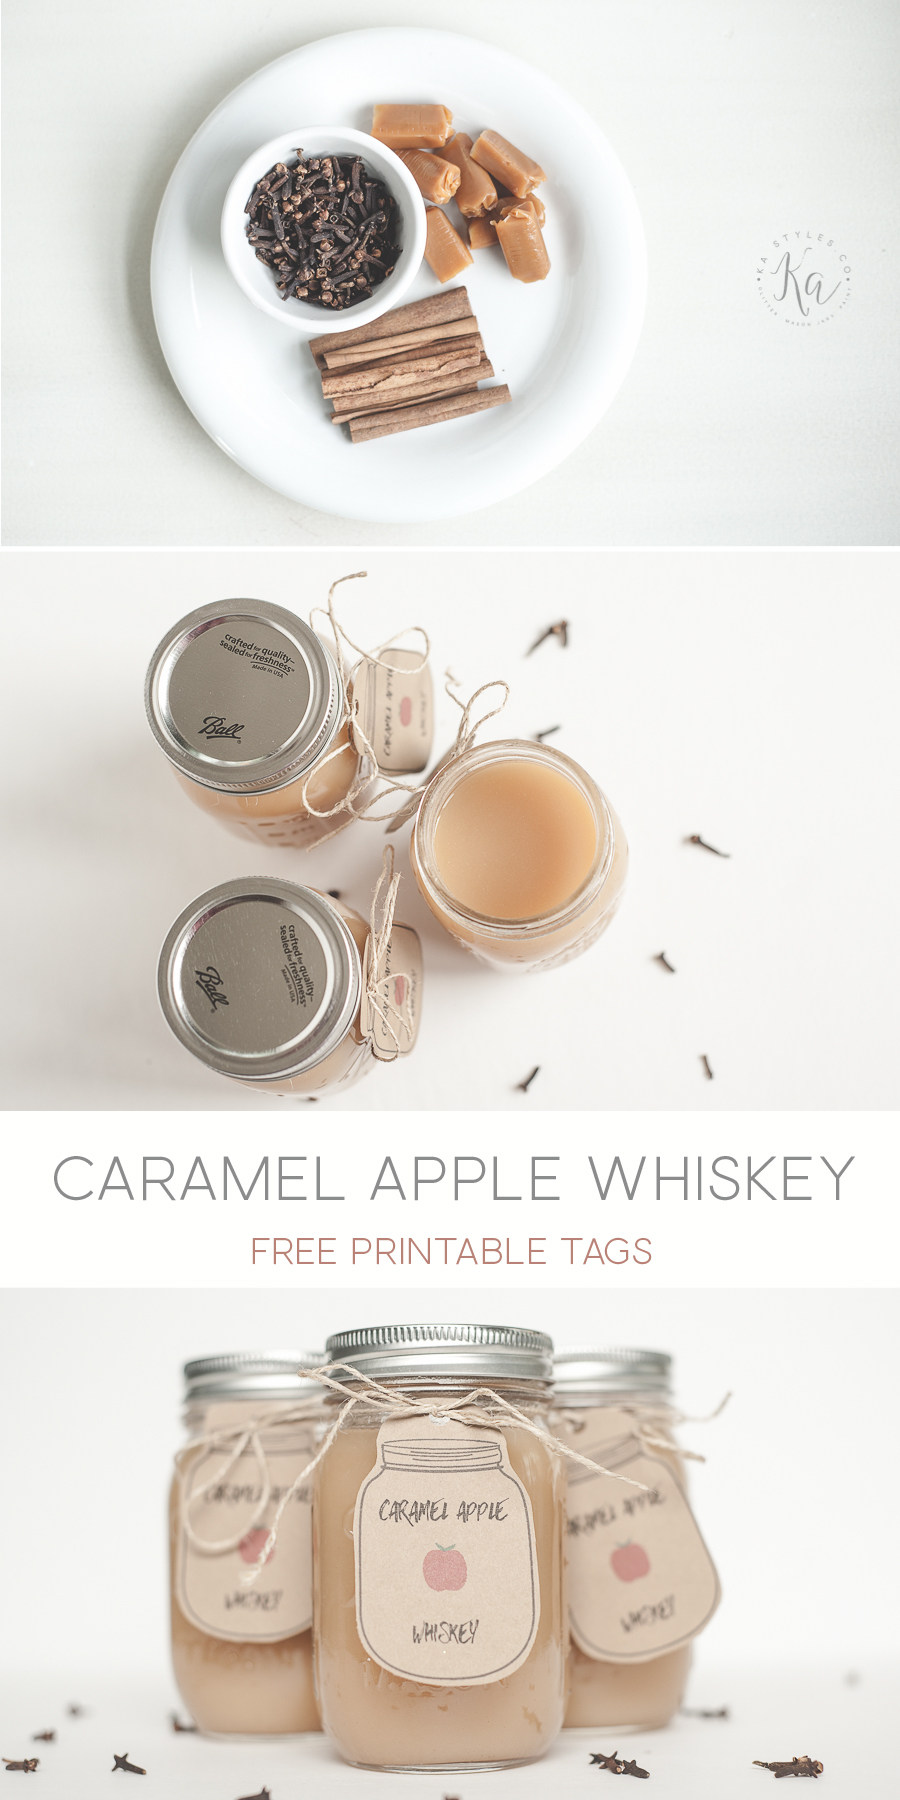 Carmel apple whiskey recipe. Pefect for holiday gift for Christmas or fall. Free printable mason jar tag.